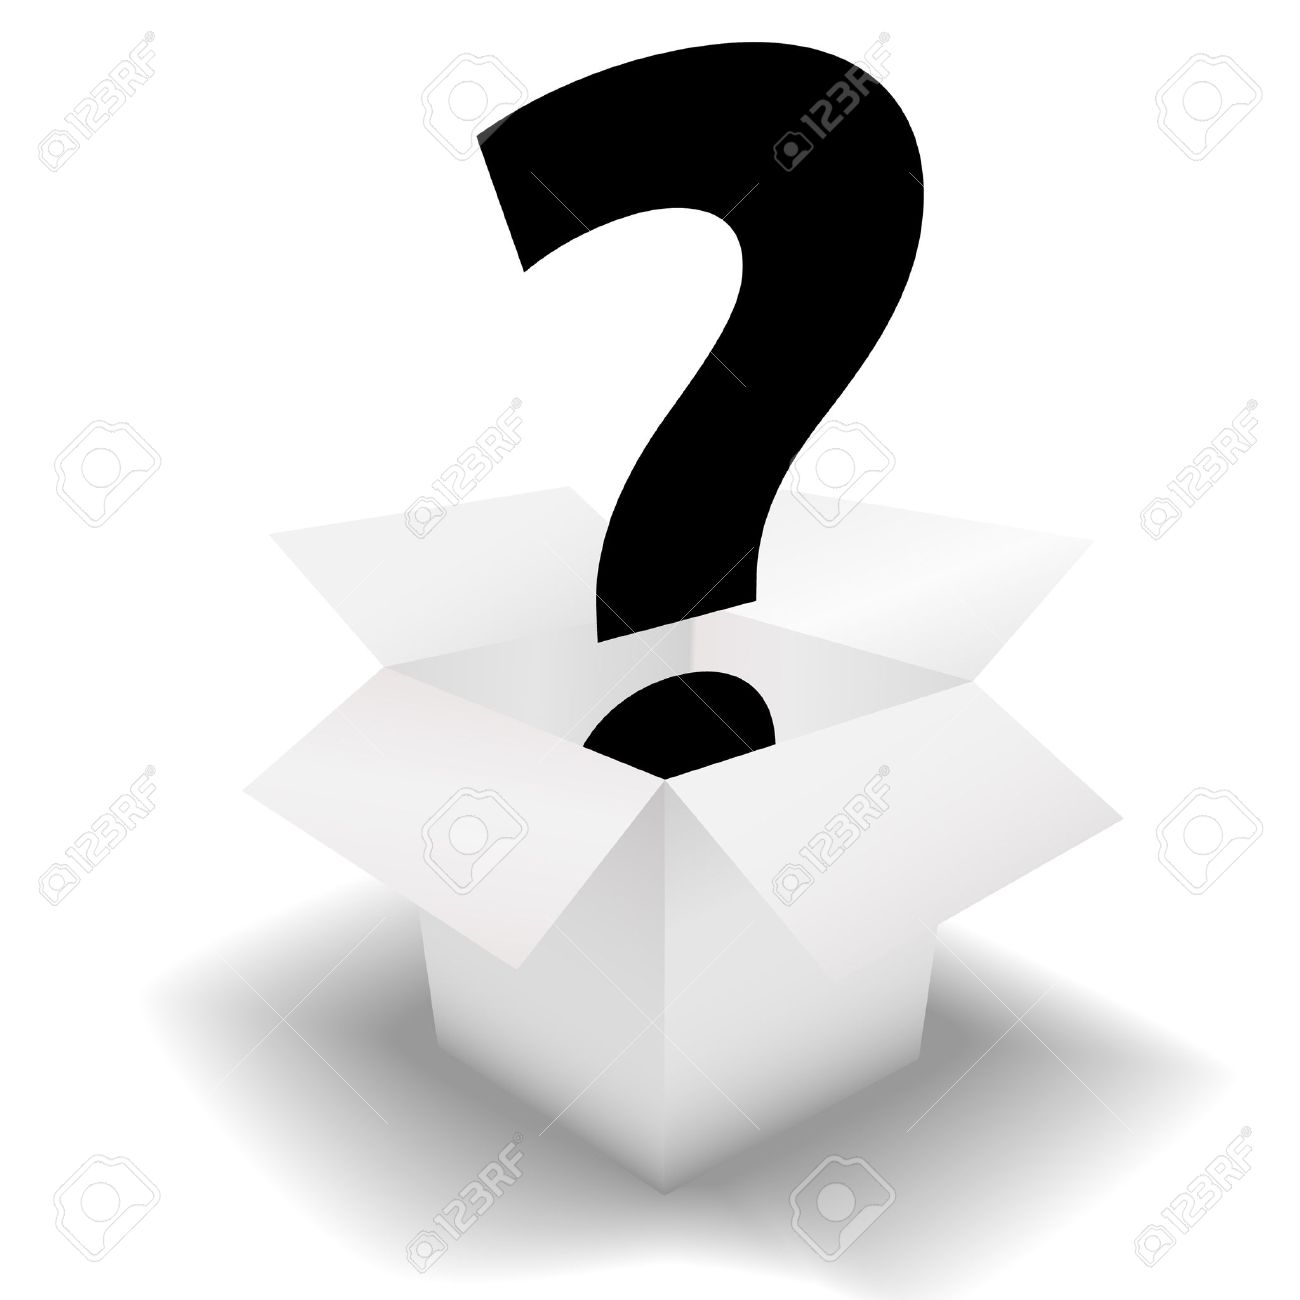 Question Clip Art Black And White Question Mark cl Question Mark Clip Art Black And White Png